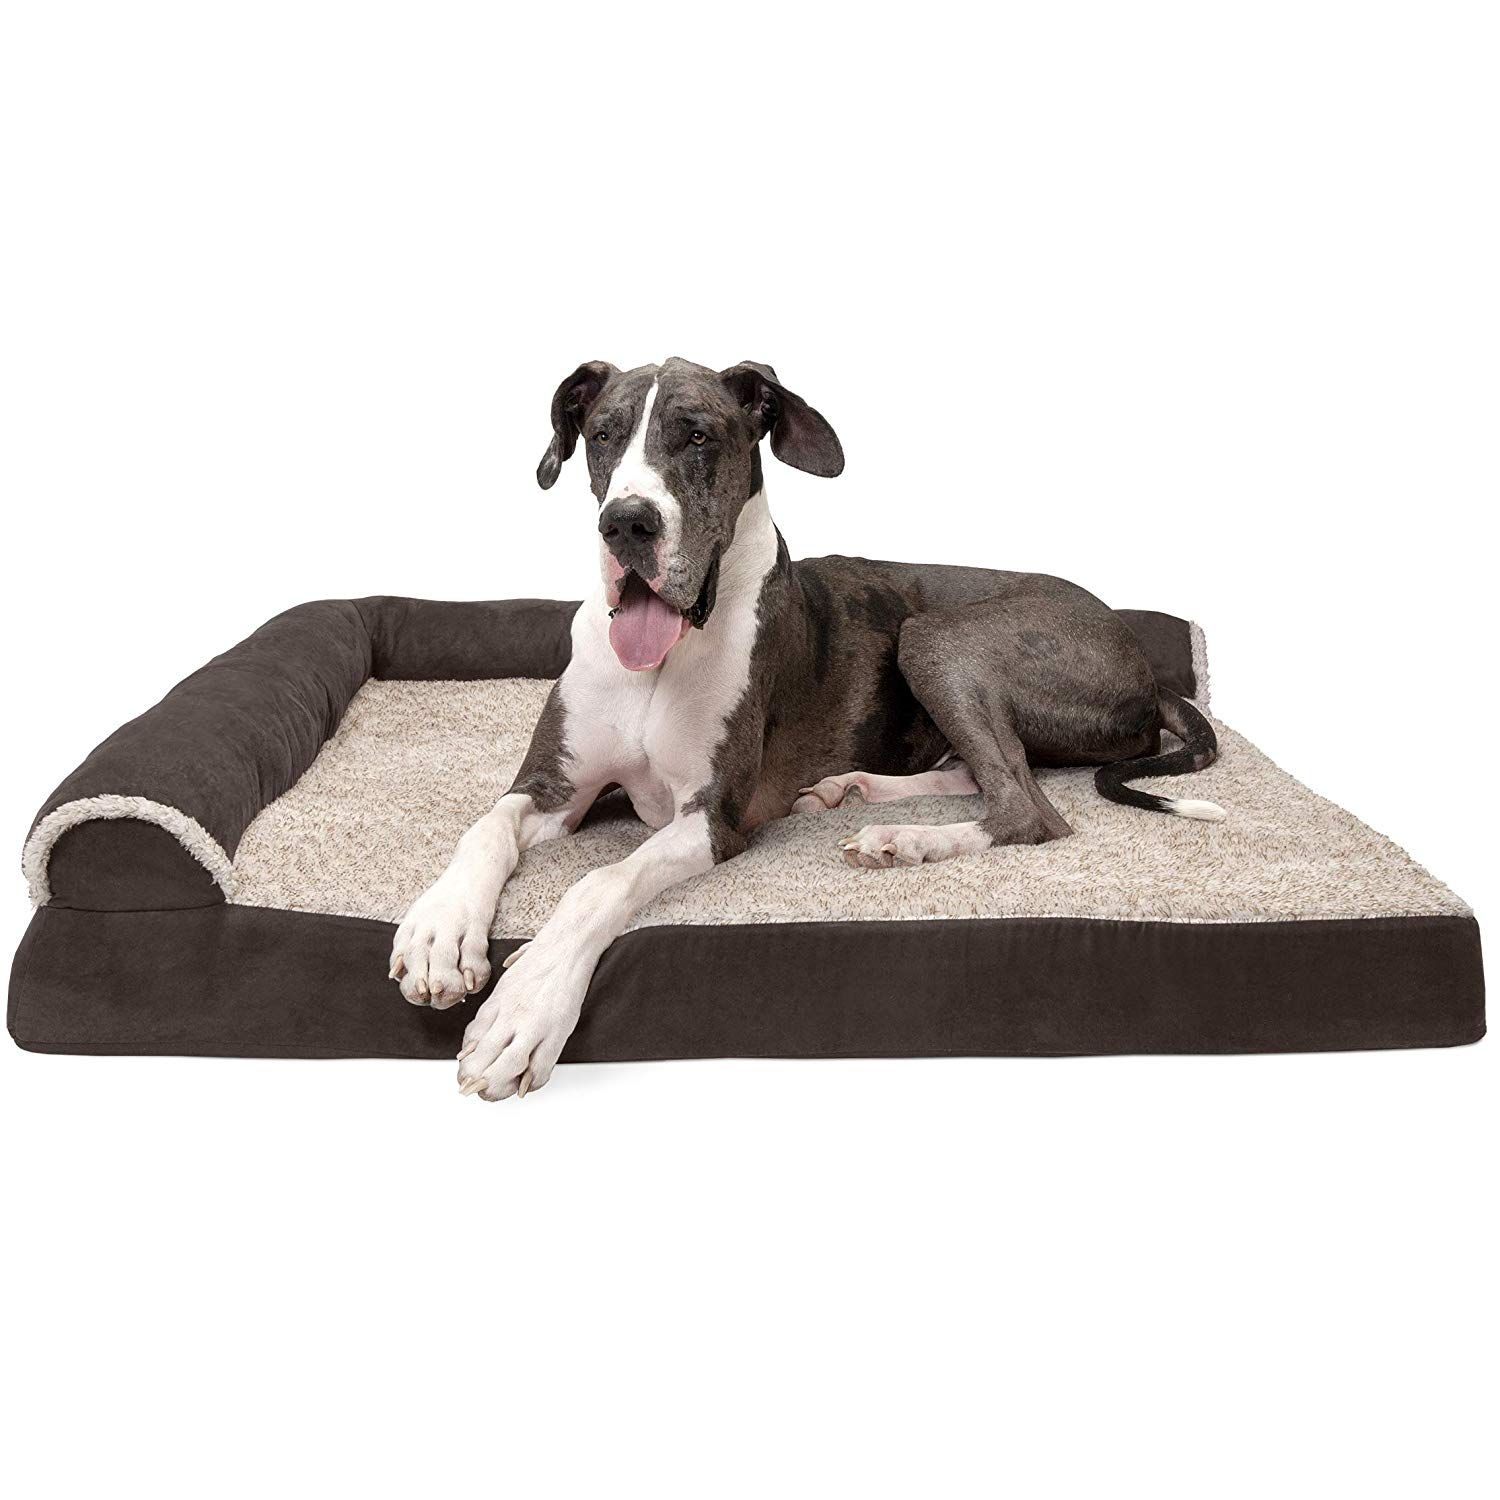 Furhaven Pet Dog Bed Orthopedic L Shaped Chaise Lounge Sofa Style Living Room Corner Couch Pet Be Dog Pet Beds Couch Pet Bed Pet Sofa Bed